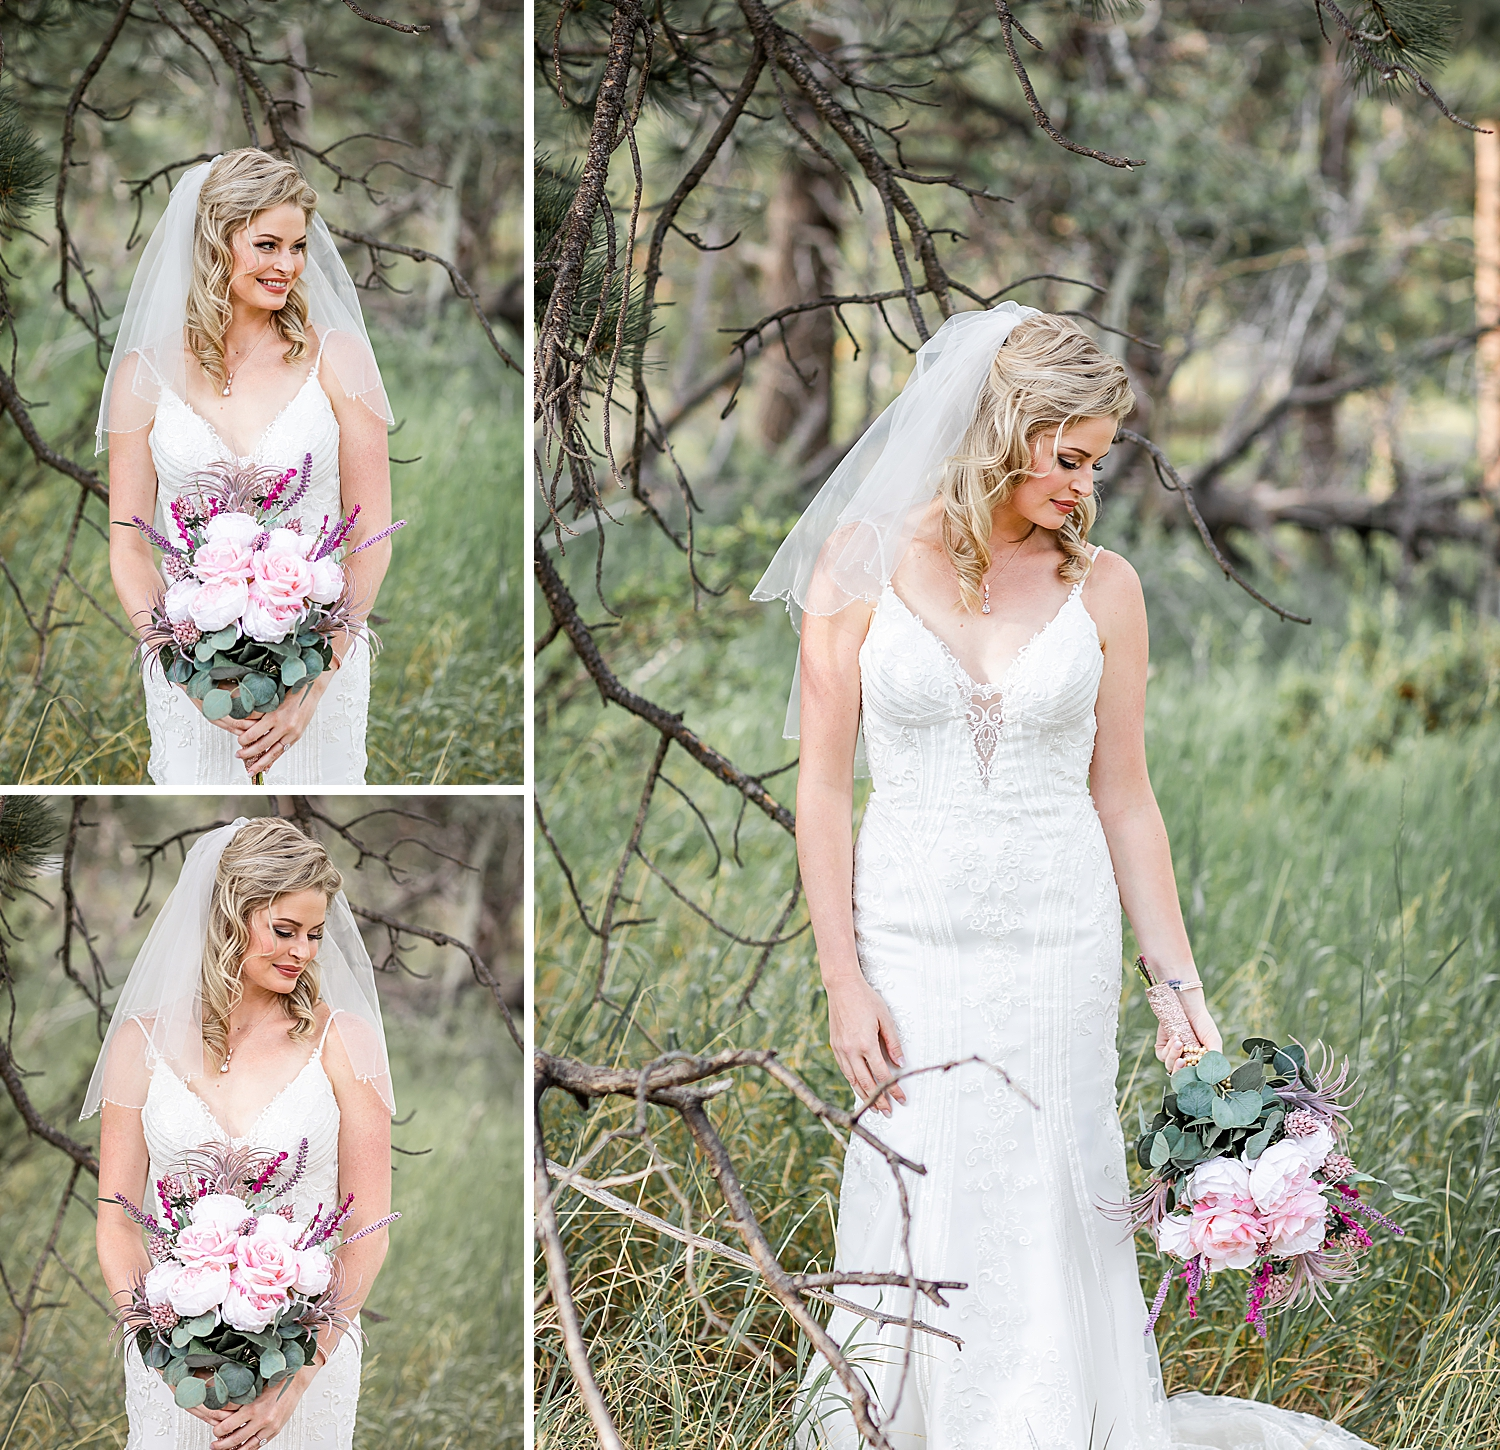 Carly-Barton-Photography-Rocky-Mountain-National-Park-Estes-Park-Wedding-Elopement_0059.jpg